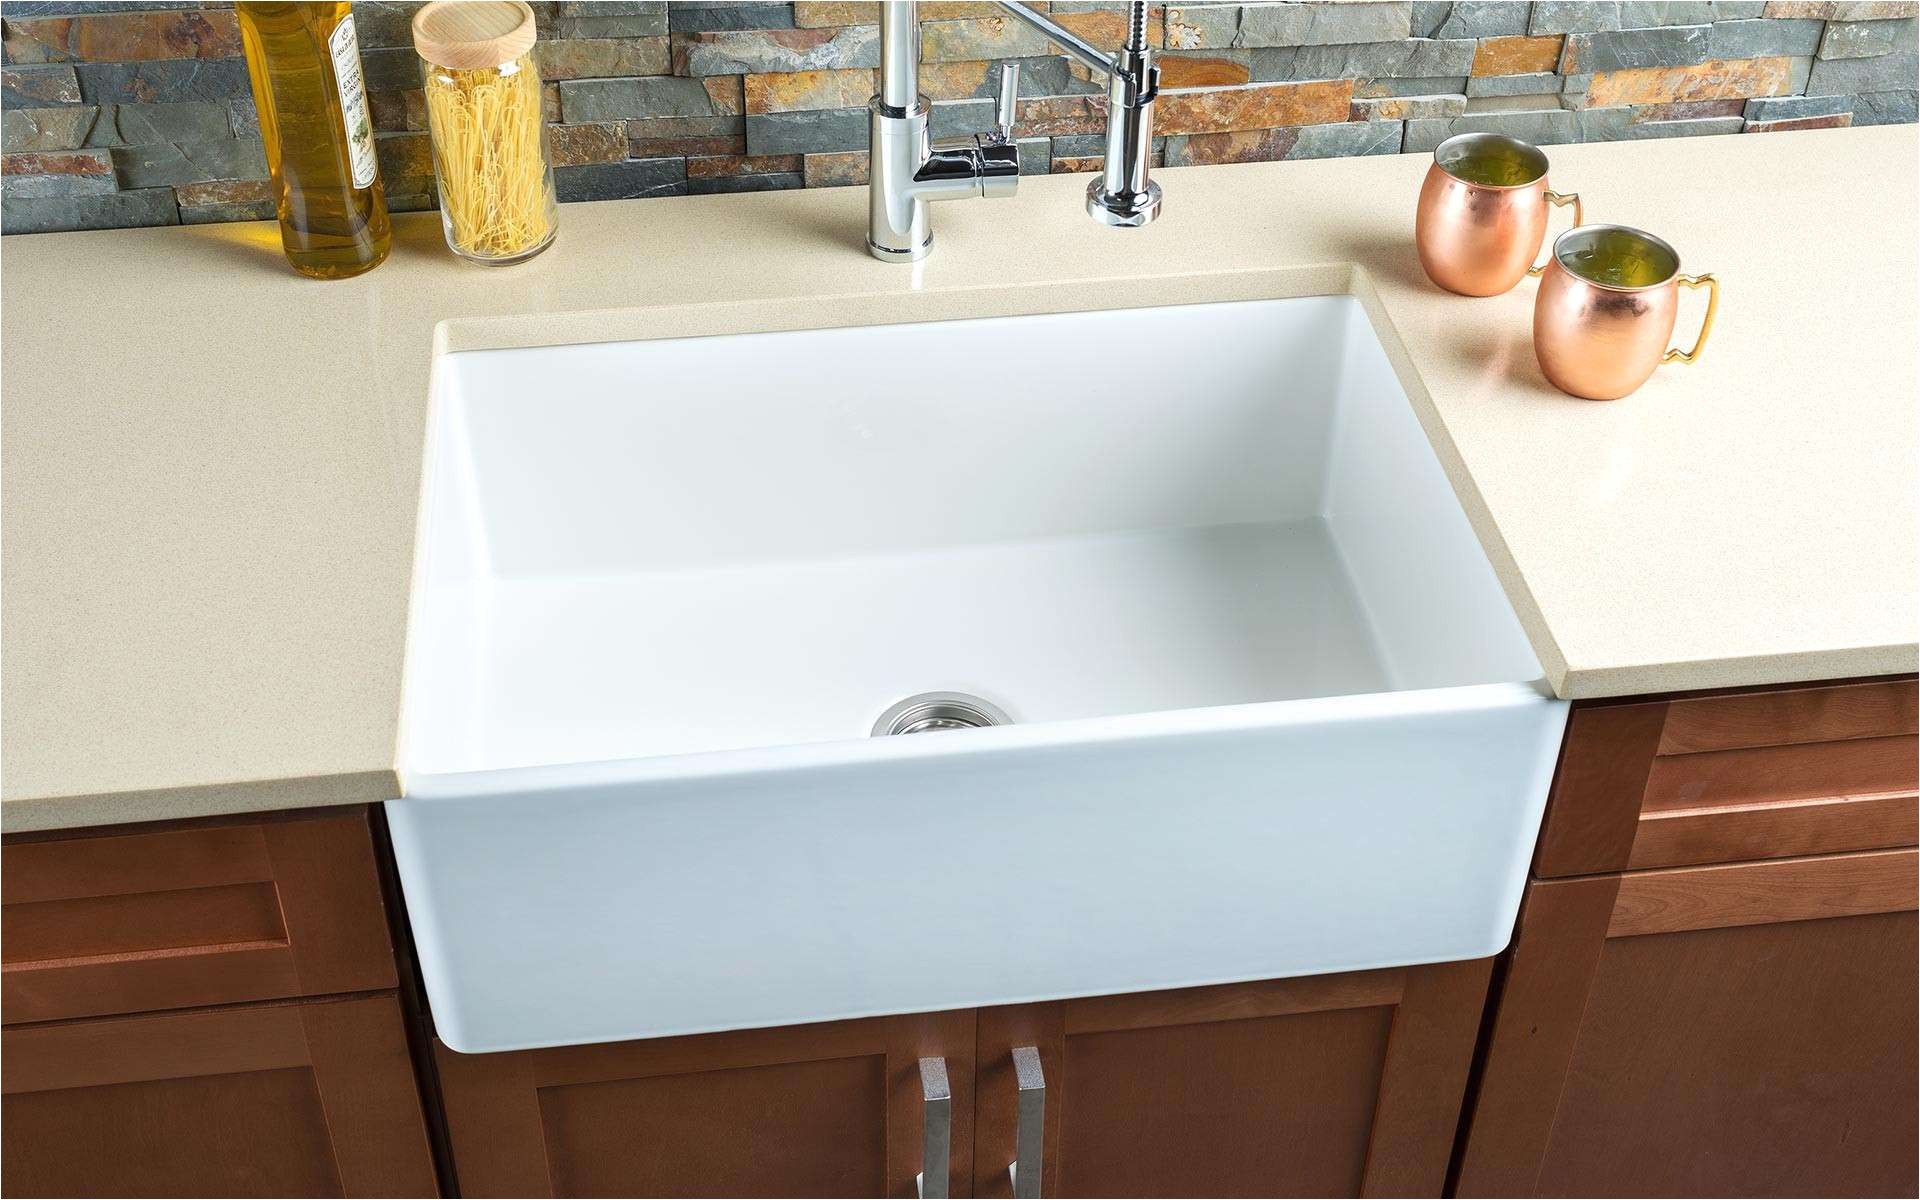 images of kitchens with farmhouse sinks best of img 3140h sink how to install a farm